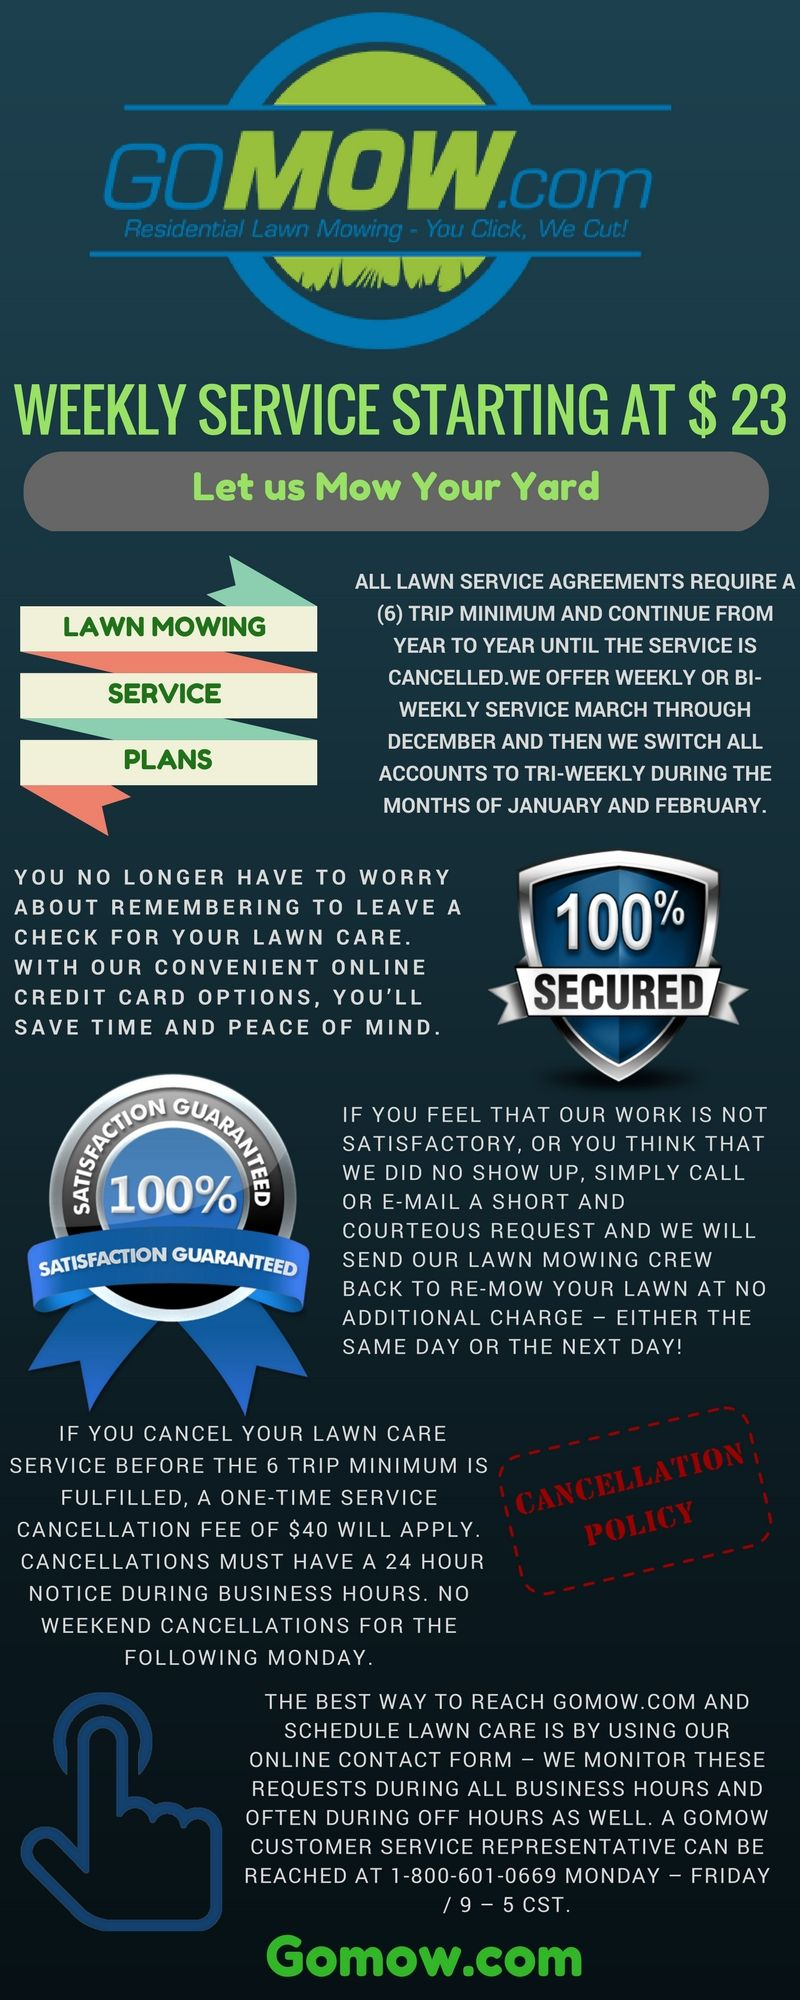 Gomow Offers A Variety Of Service Options For Lawn Mowing To Serve